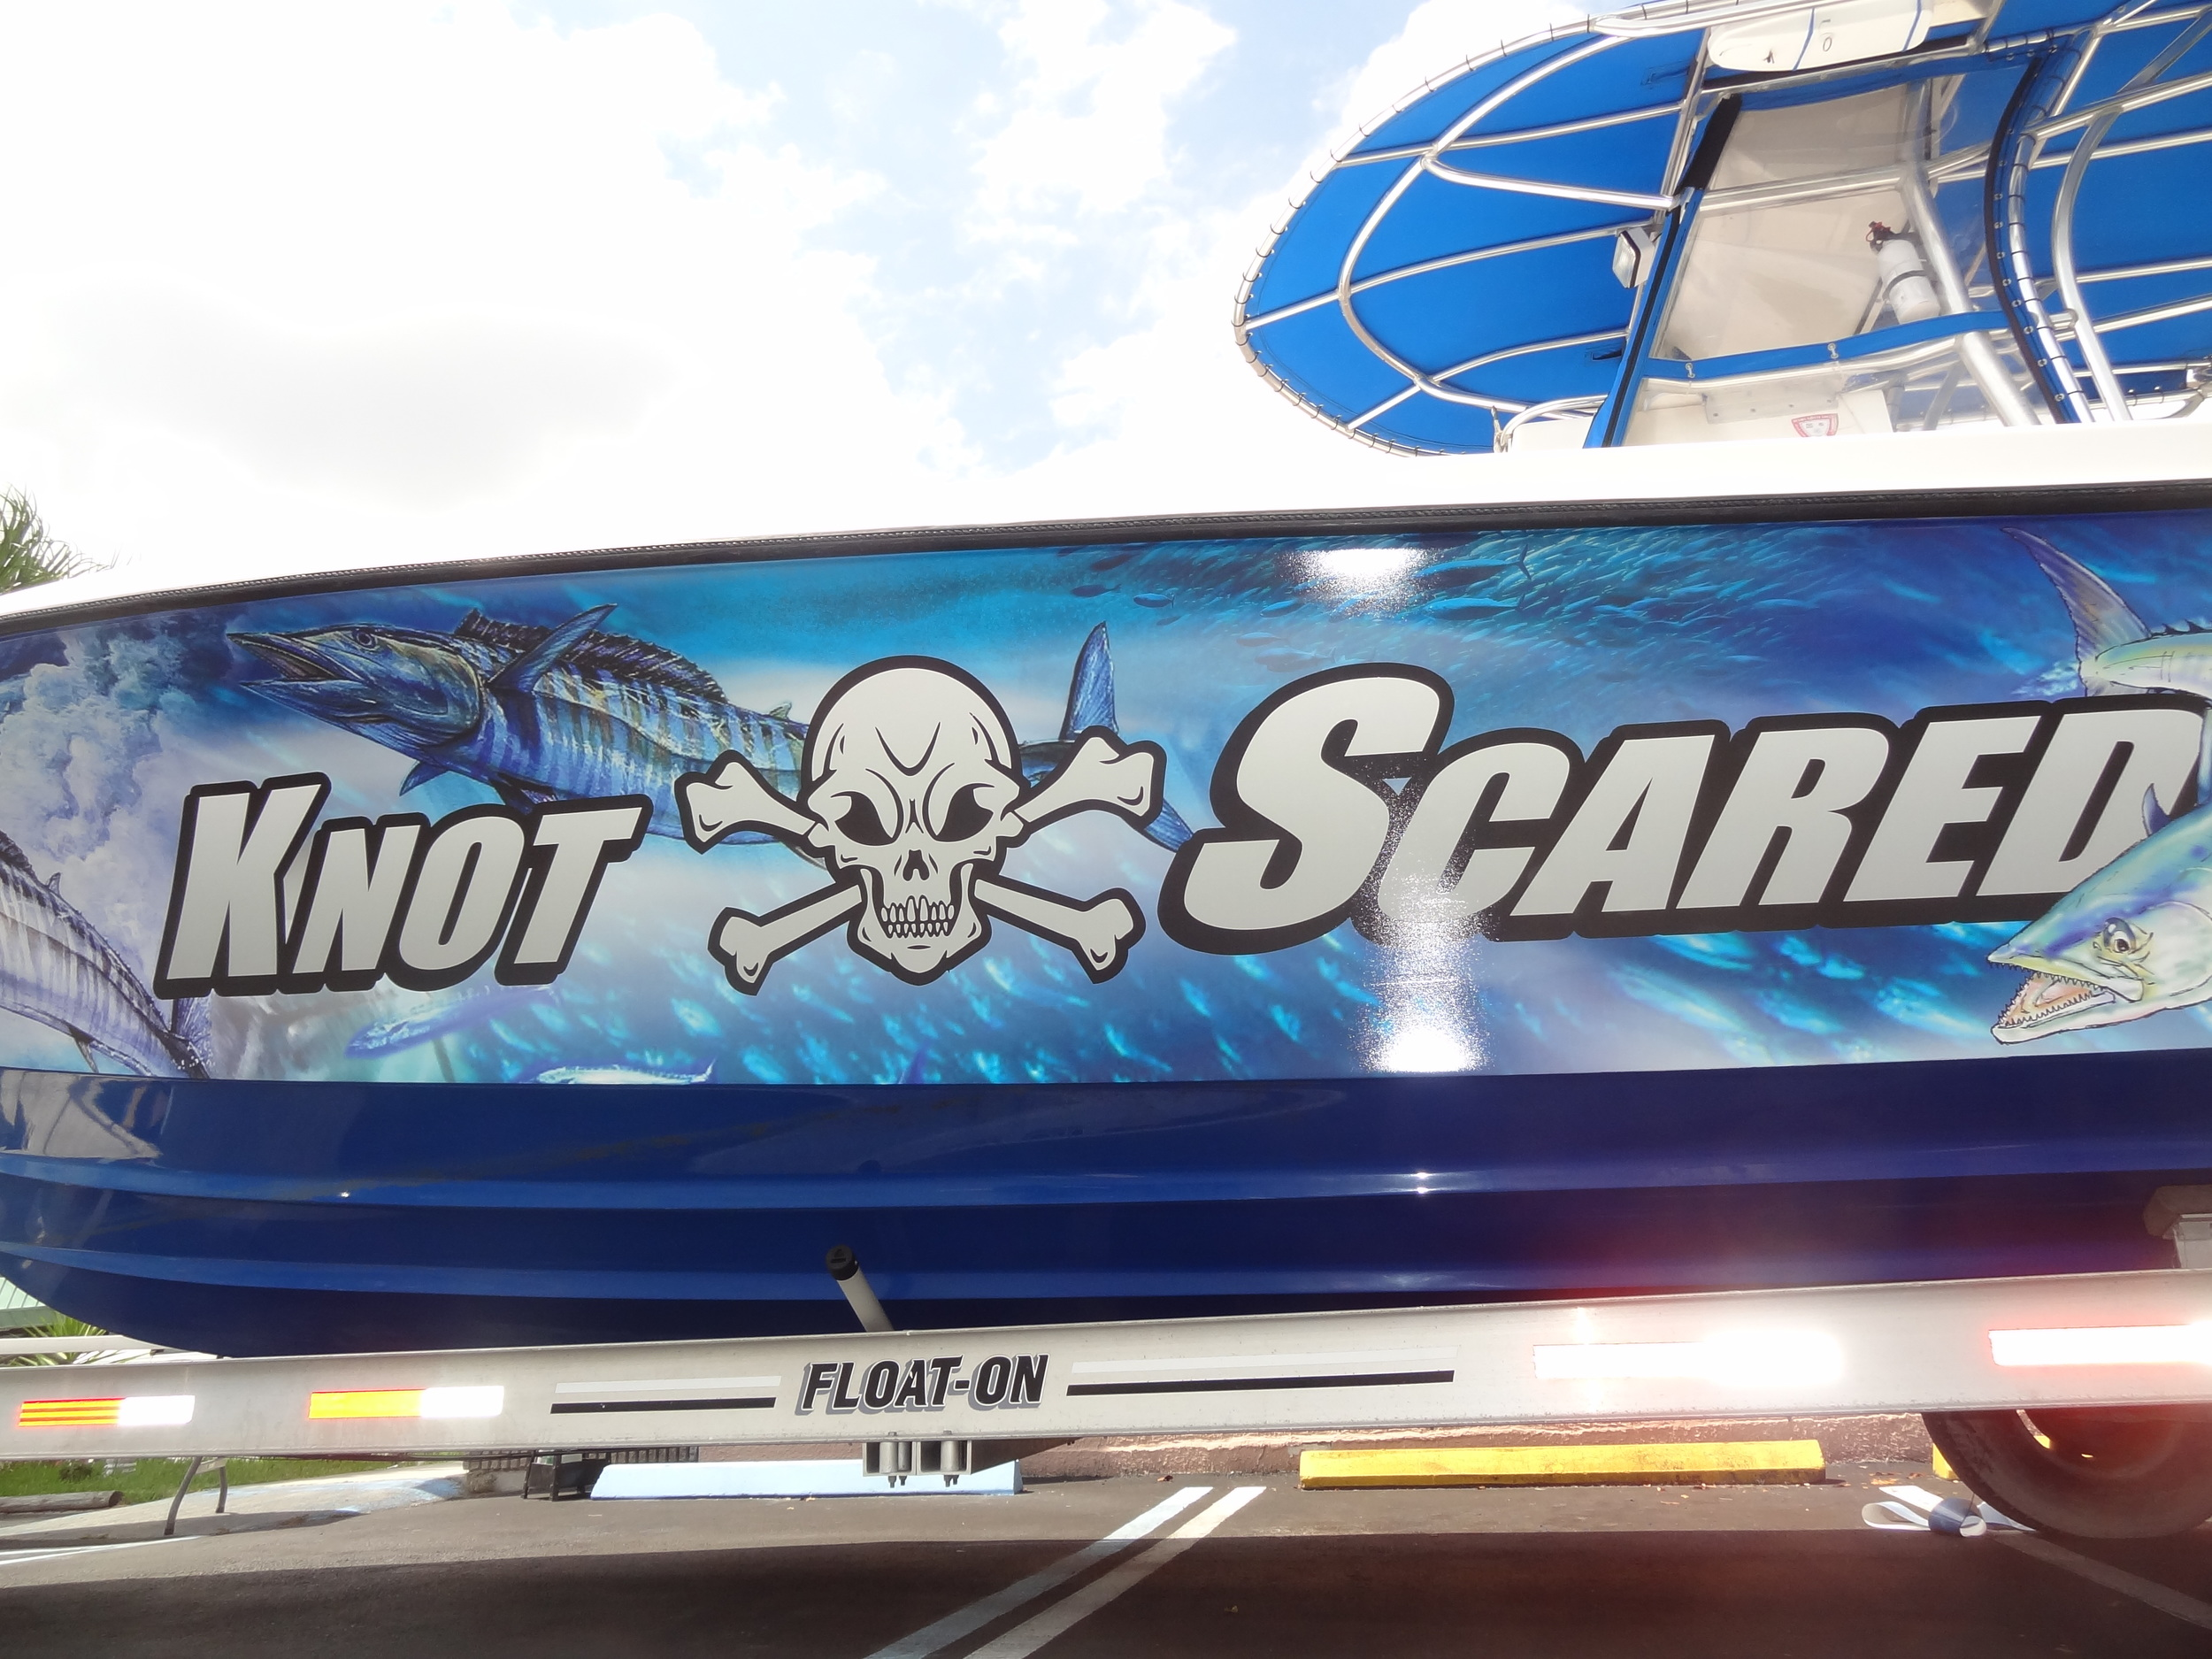 Knot Scared Boat Wrap